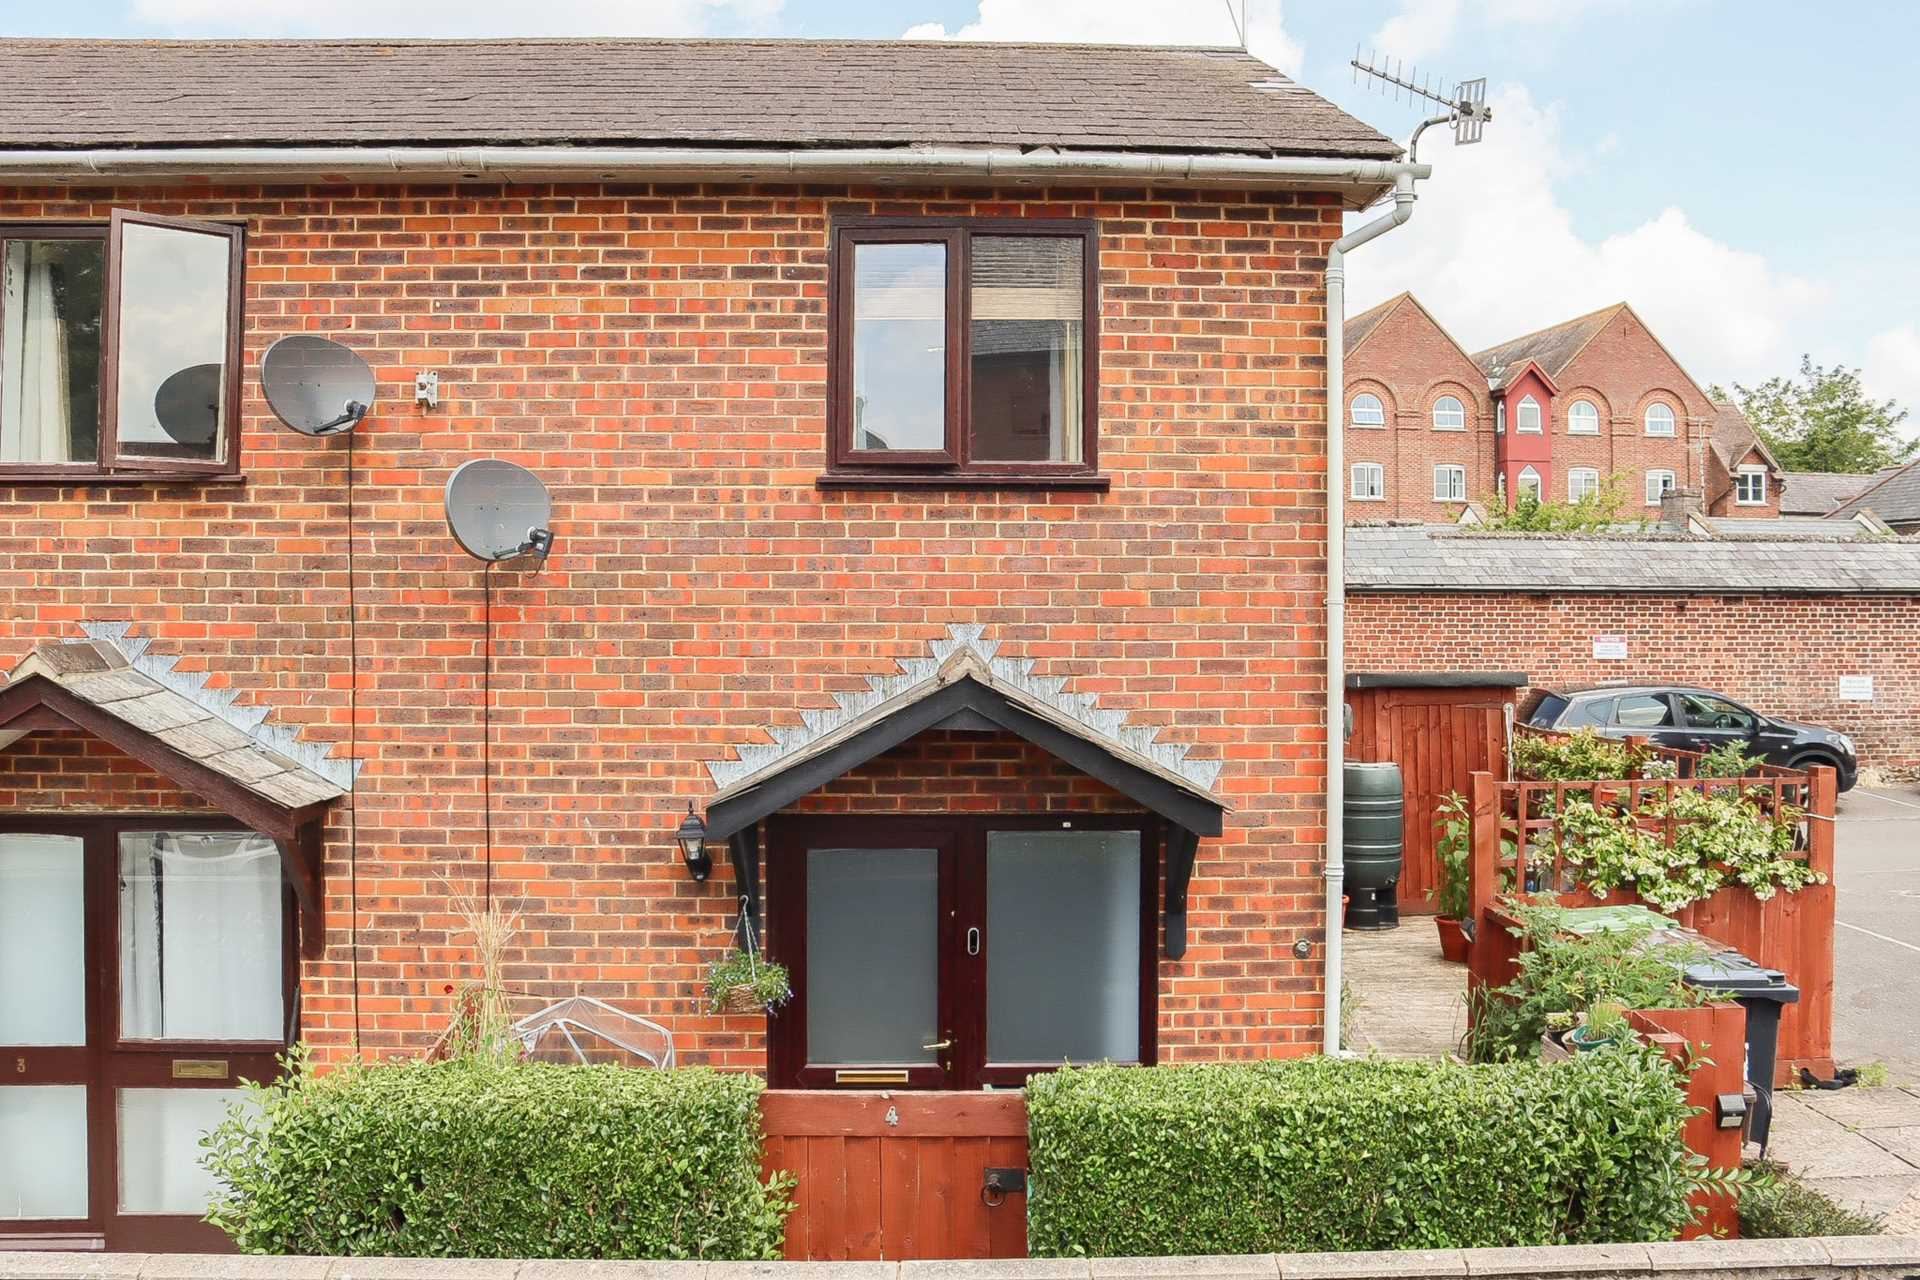 2 bed end of terrace house for sale in The Mews, Shorts Lane, Blandford Forum, Blandford Forum  - Property Image 1